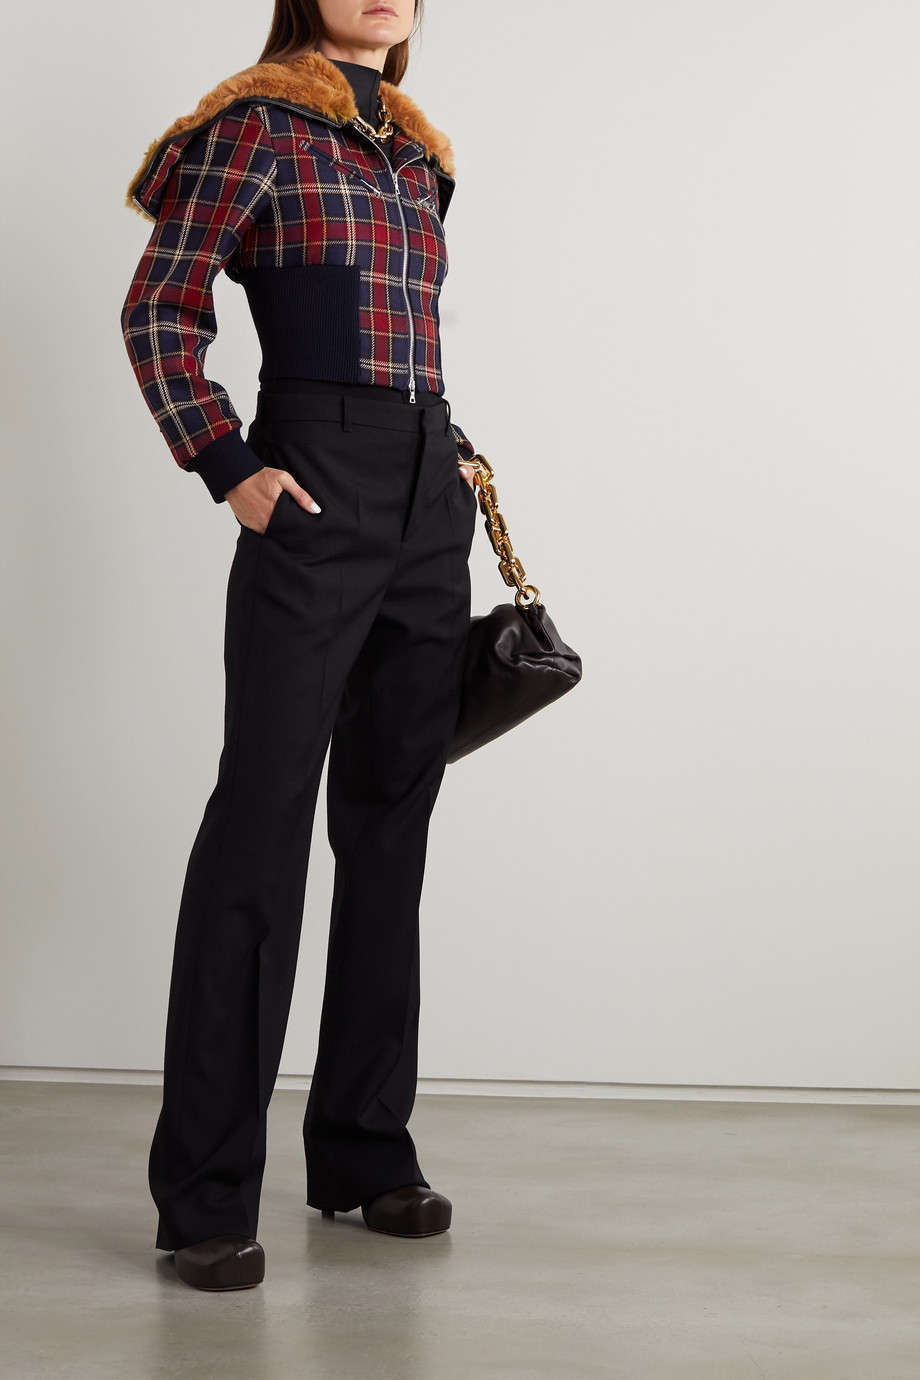 Dries Van Noten Faux fur and leather-trimmed checked wool jacket